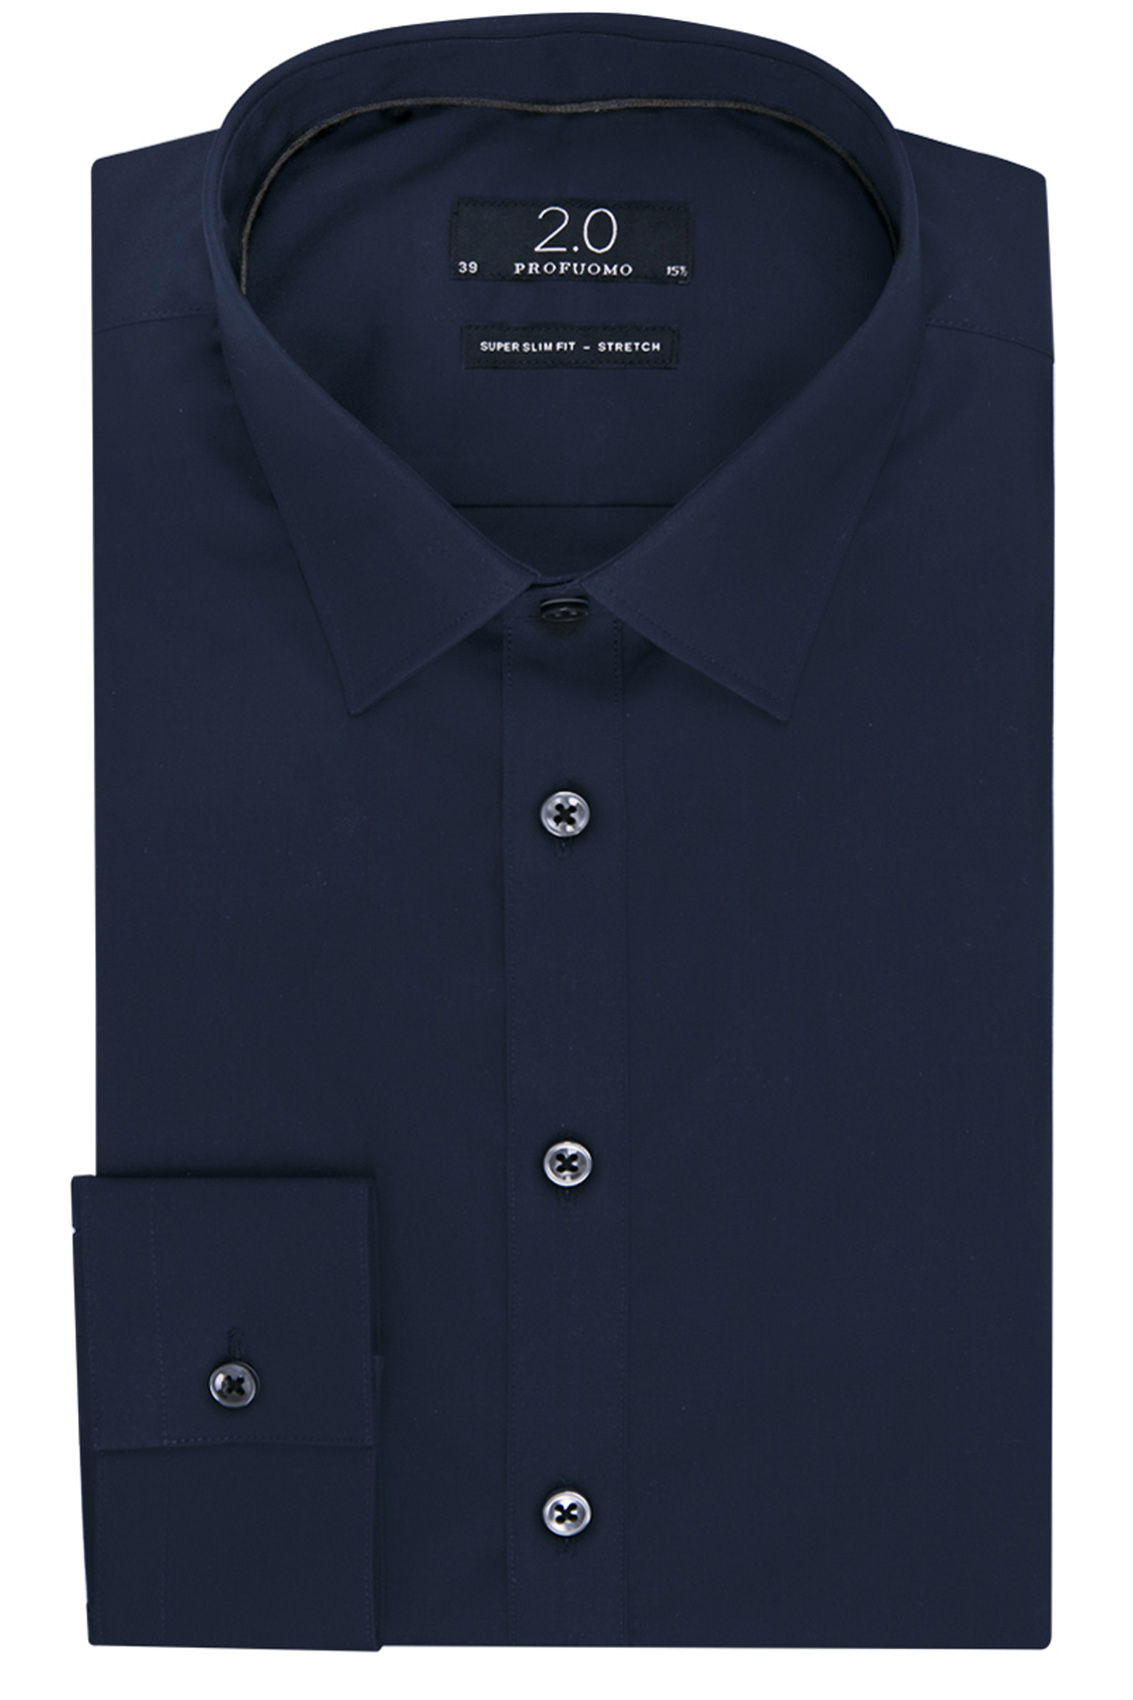 Profuomo 2.0 overhemd navy super slim fit